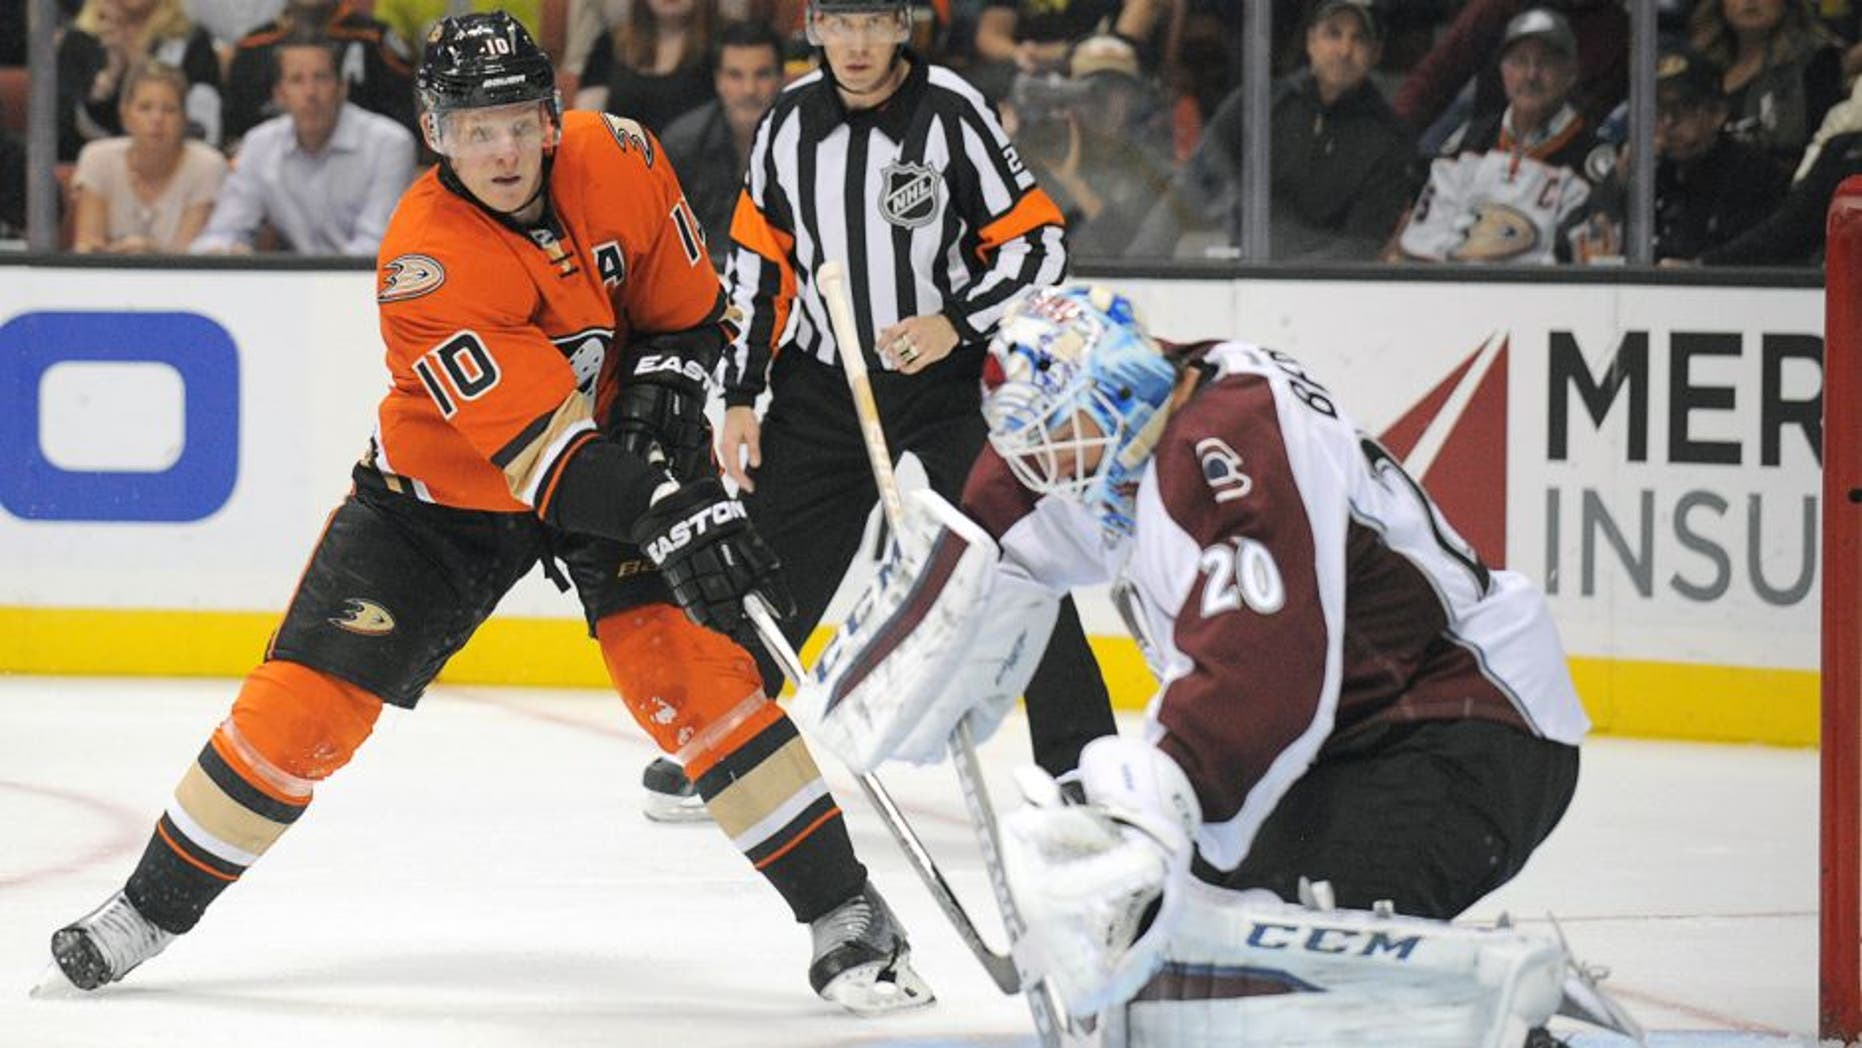 October 16, 2015; Anaheim, CA, USA; Anaheim Ducks right wing Corey Perry (10) shoots against Colorado Avalanche goalie Reto Berra (20) during the second period at Honda Center. Mandatory Credit: Gary A. Vasquez-USA TODAY Sports